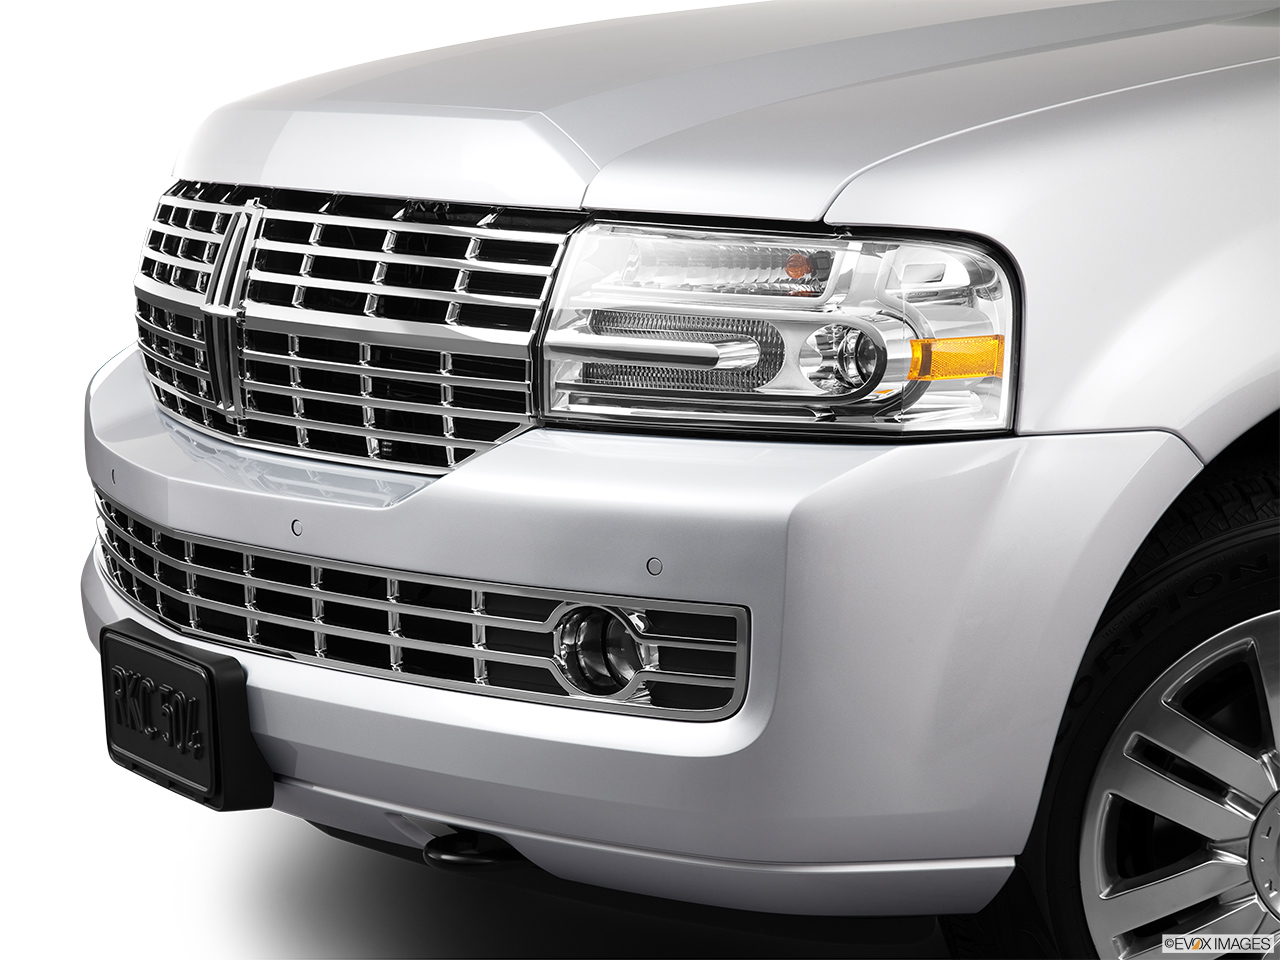 2013 Lincoln Navigator Base Close up of Grill.